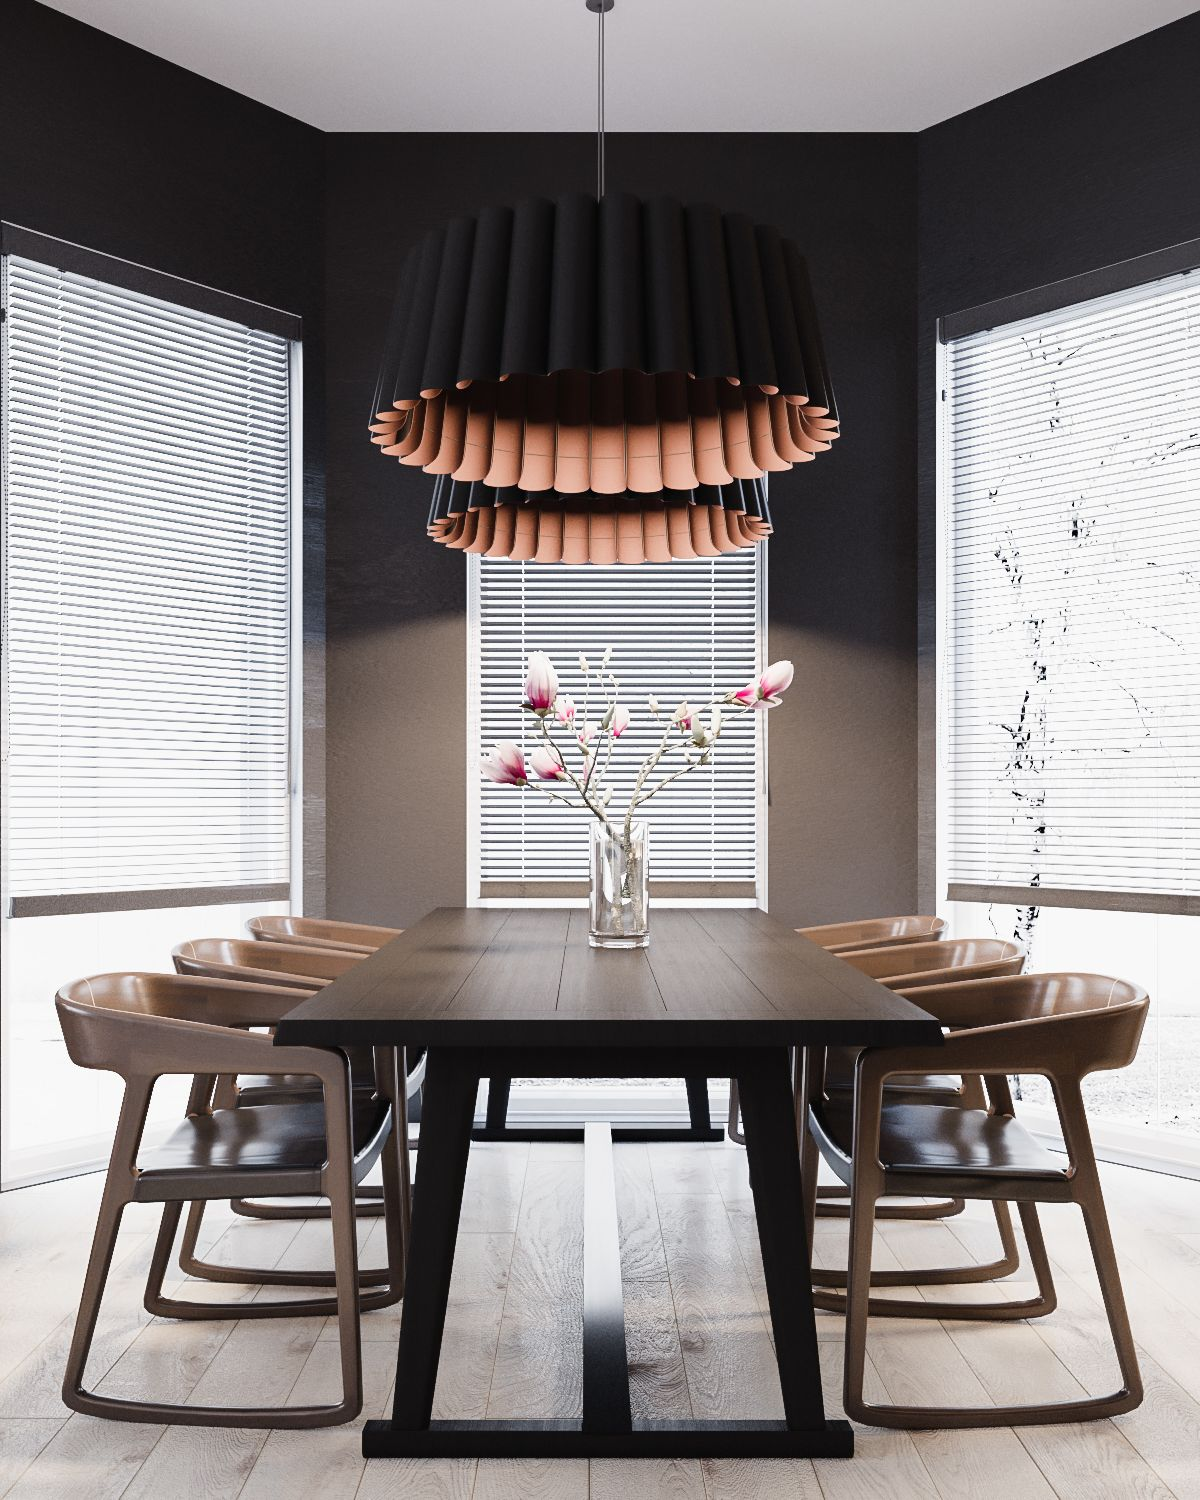 modern home Modern home in Ukraine with minimalist B&W designs beautiful dark dining room decor